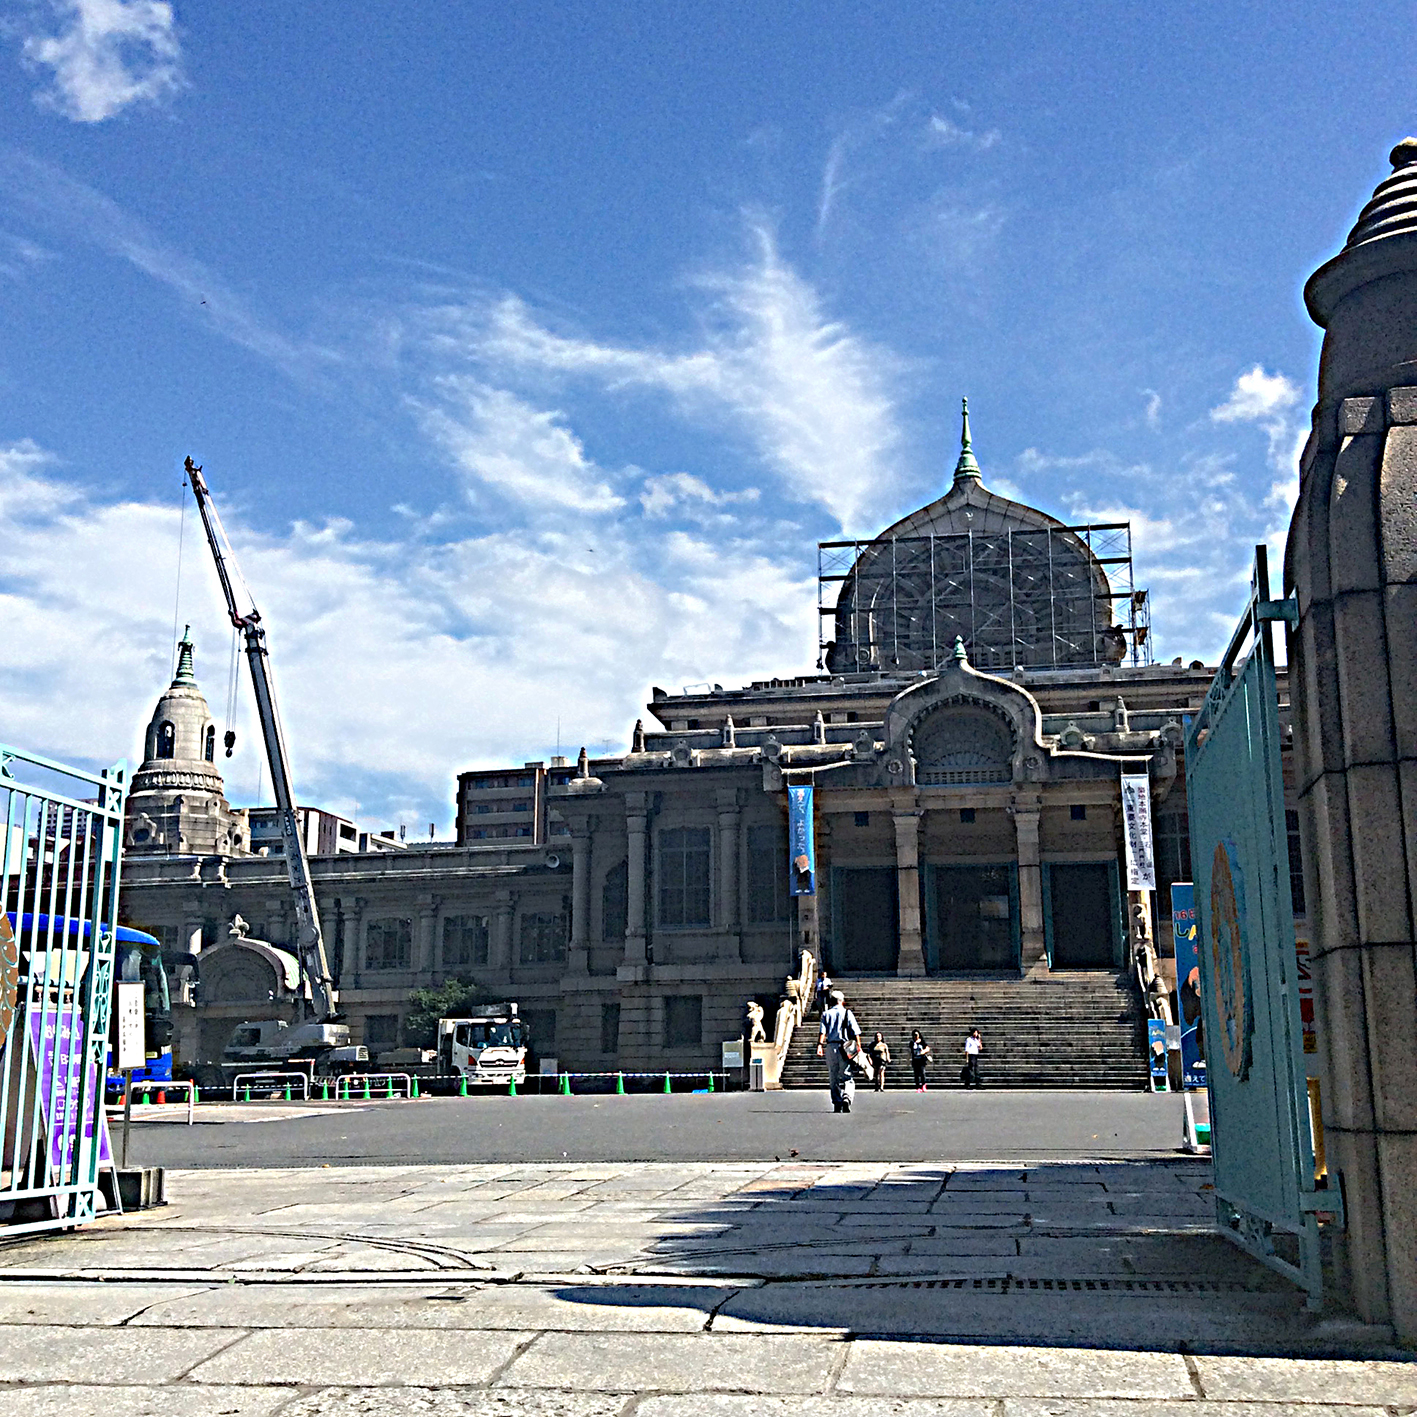 Through pale blue metal gates, a view into the large courtyard fronting this well-known temple made of light grey stone; cranes and scaffolding do not deter visitors on this sunny day. The expanse of blue sky has a few wisps of white cloud.